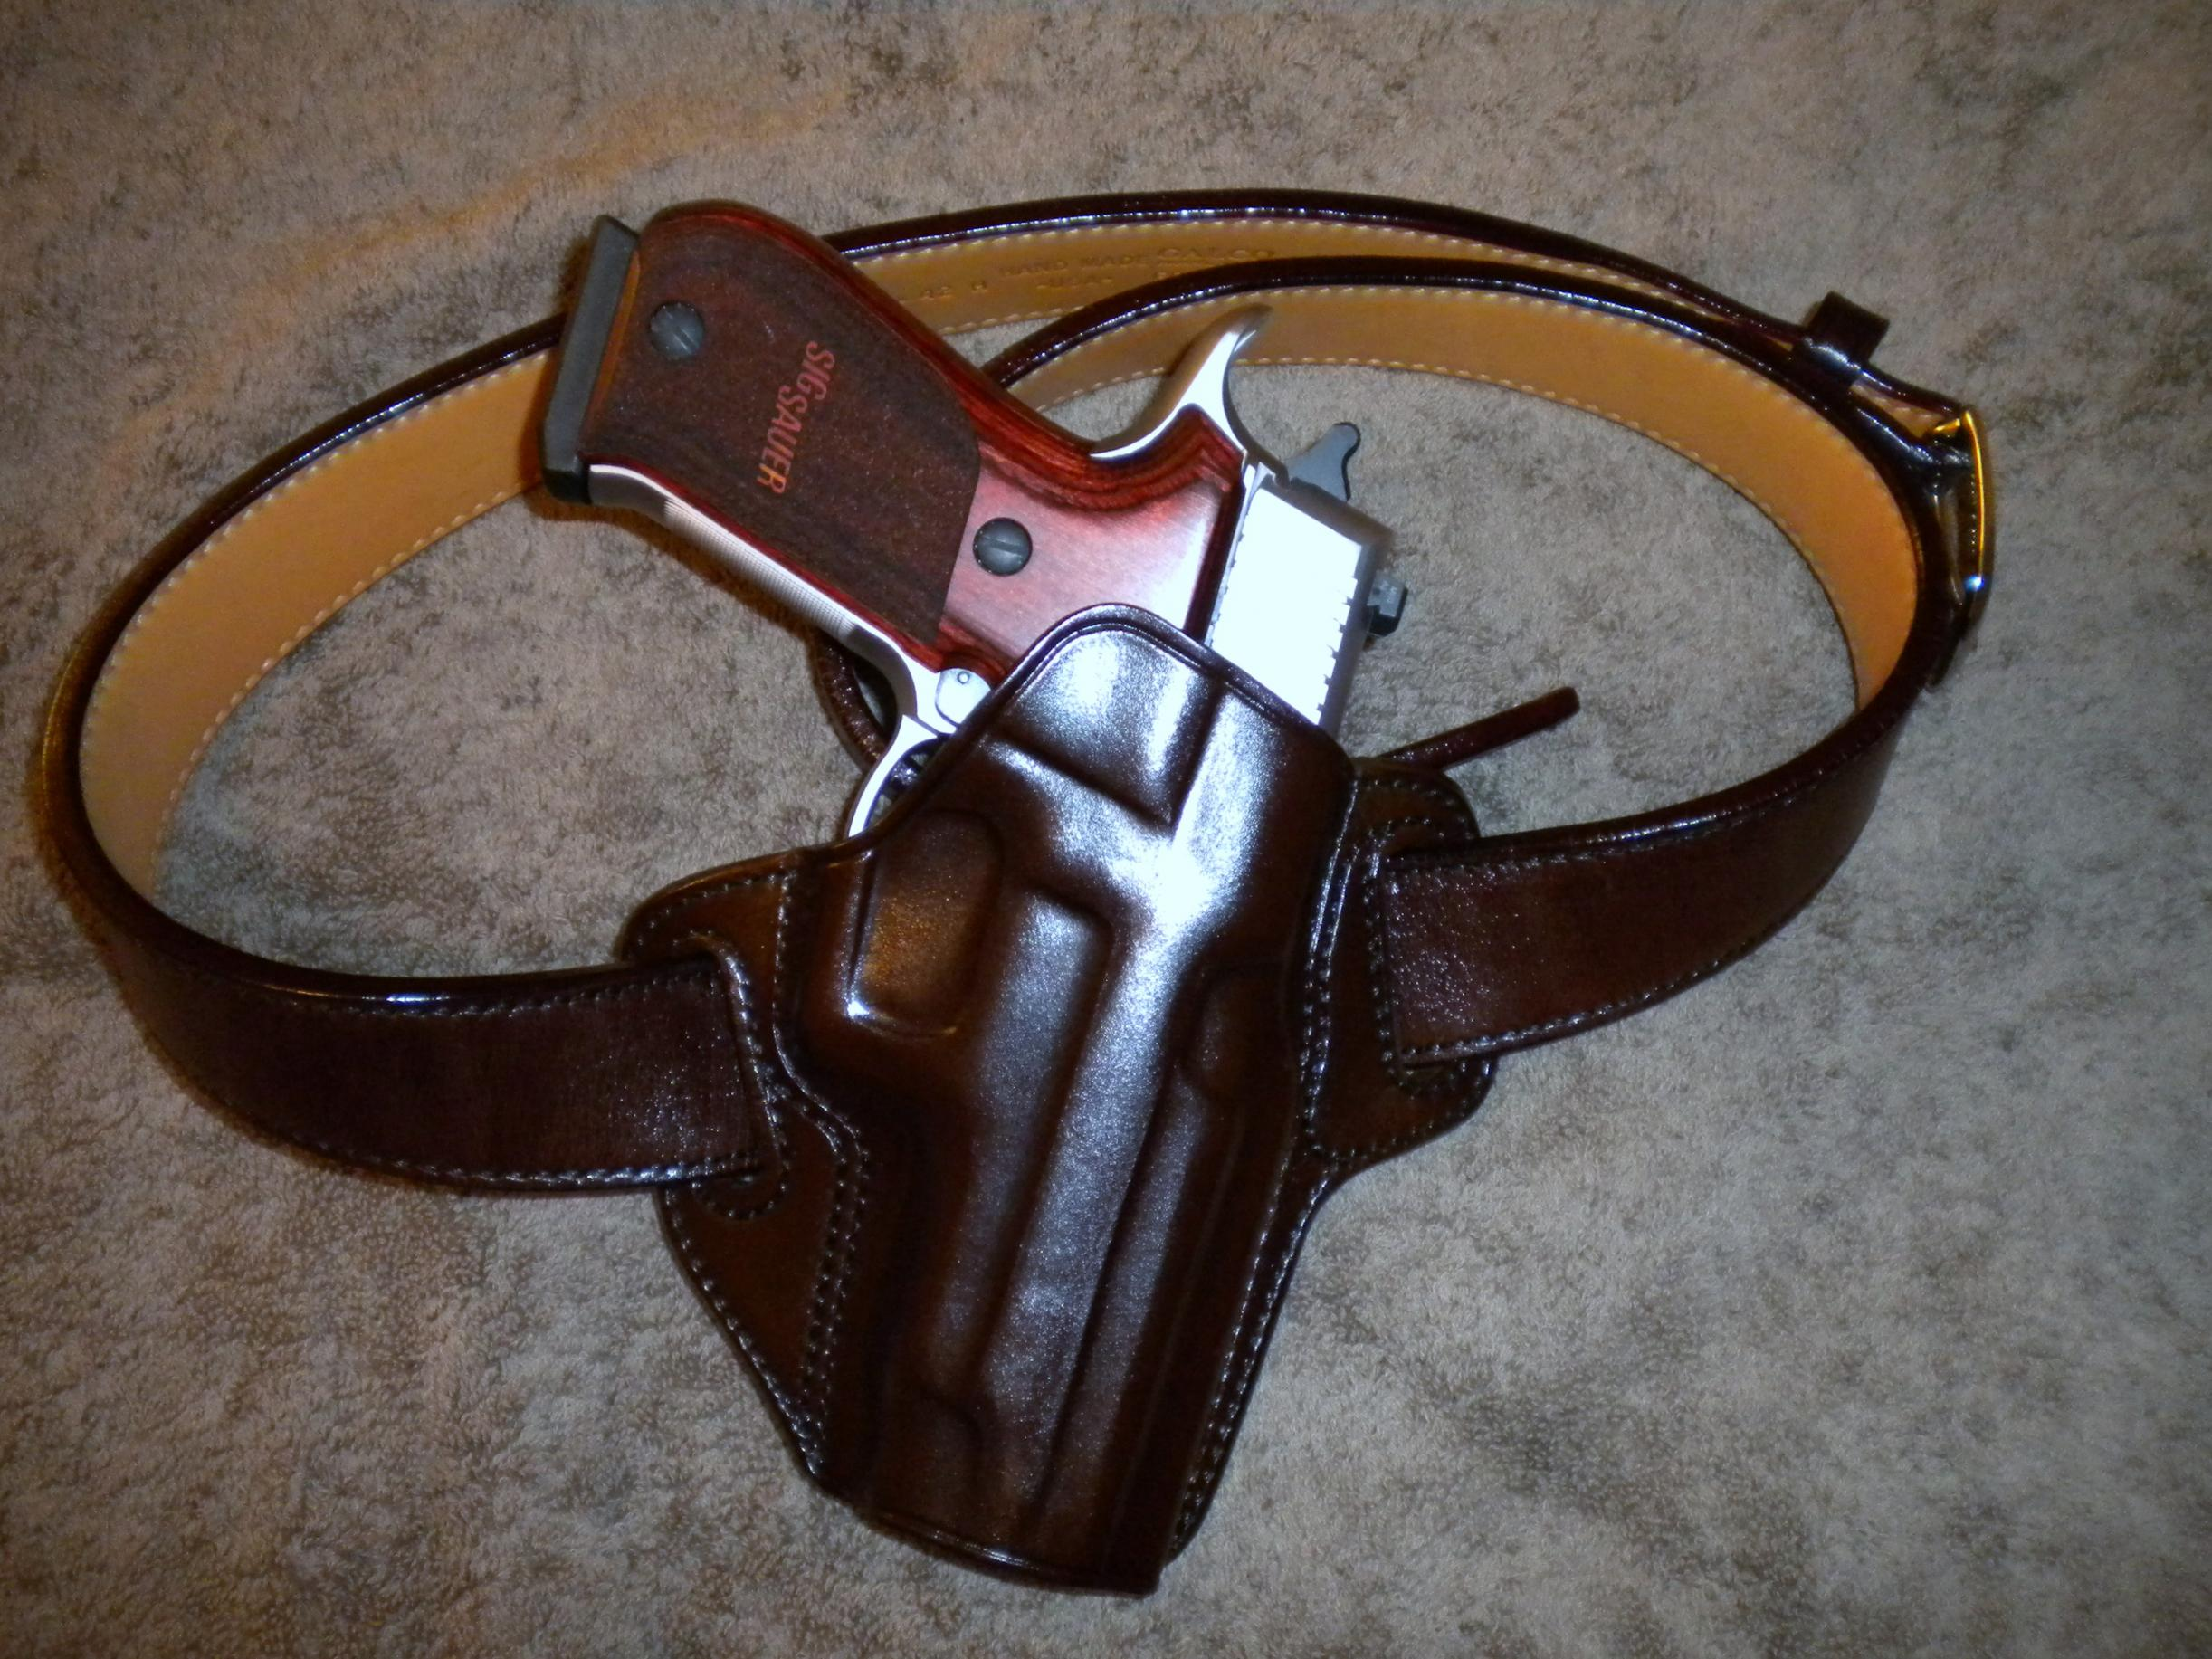 What is the best OWB CCW holster for a large semi-auto-001.jpg